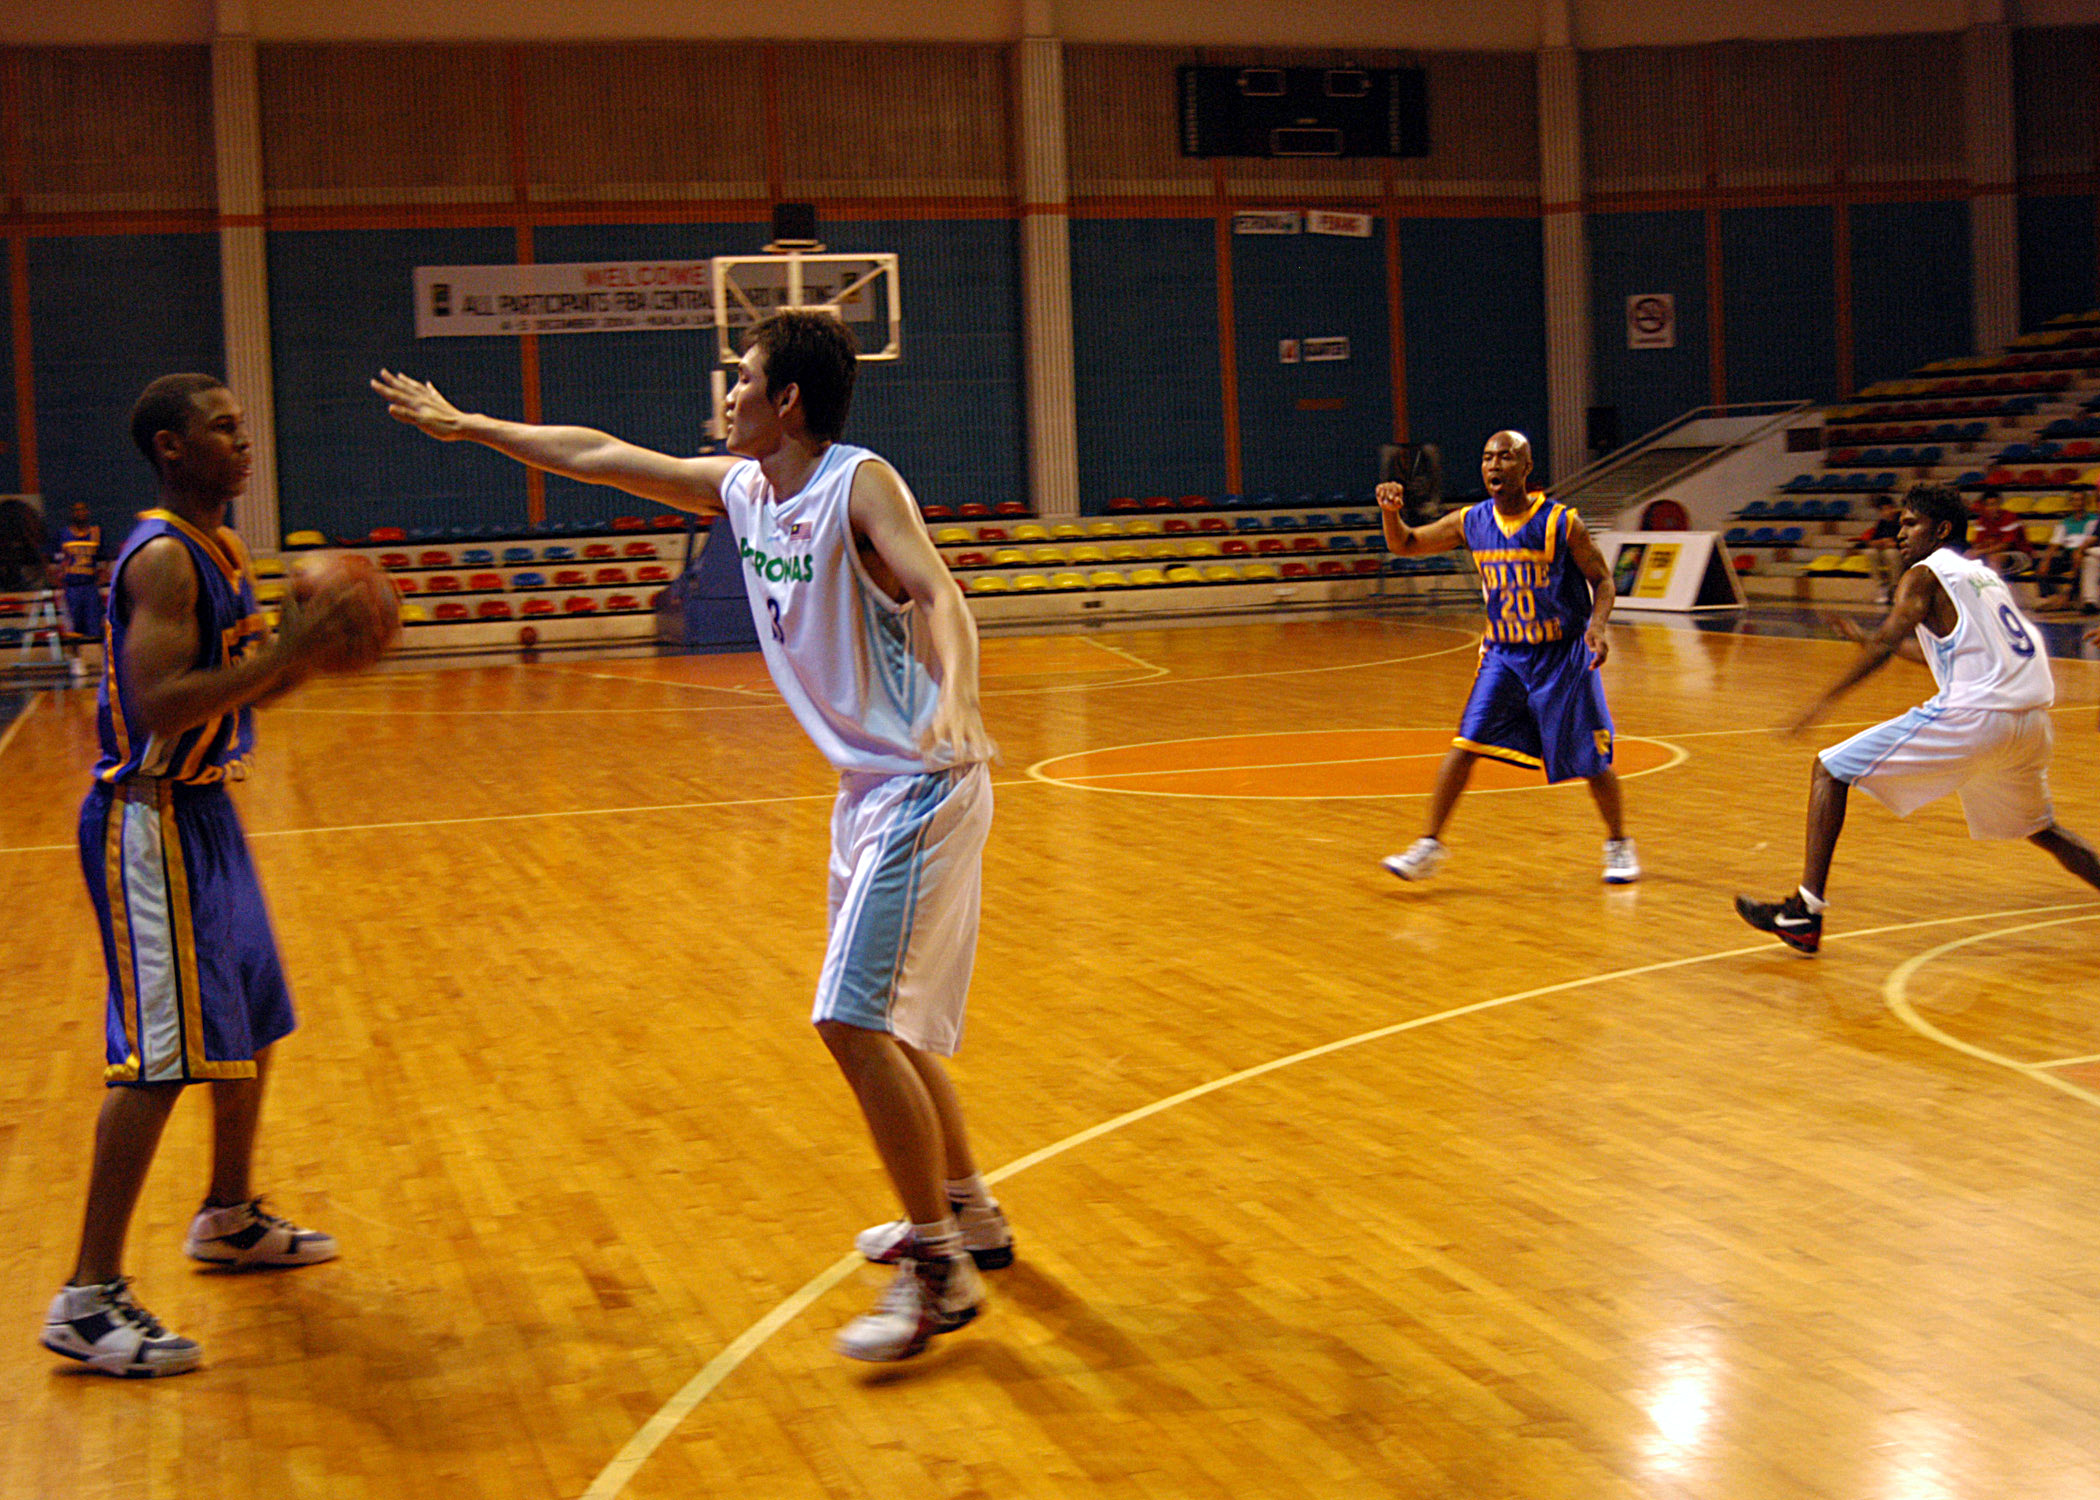 game Amateur basketball